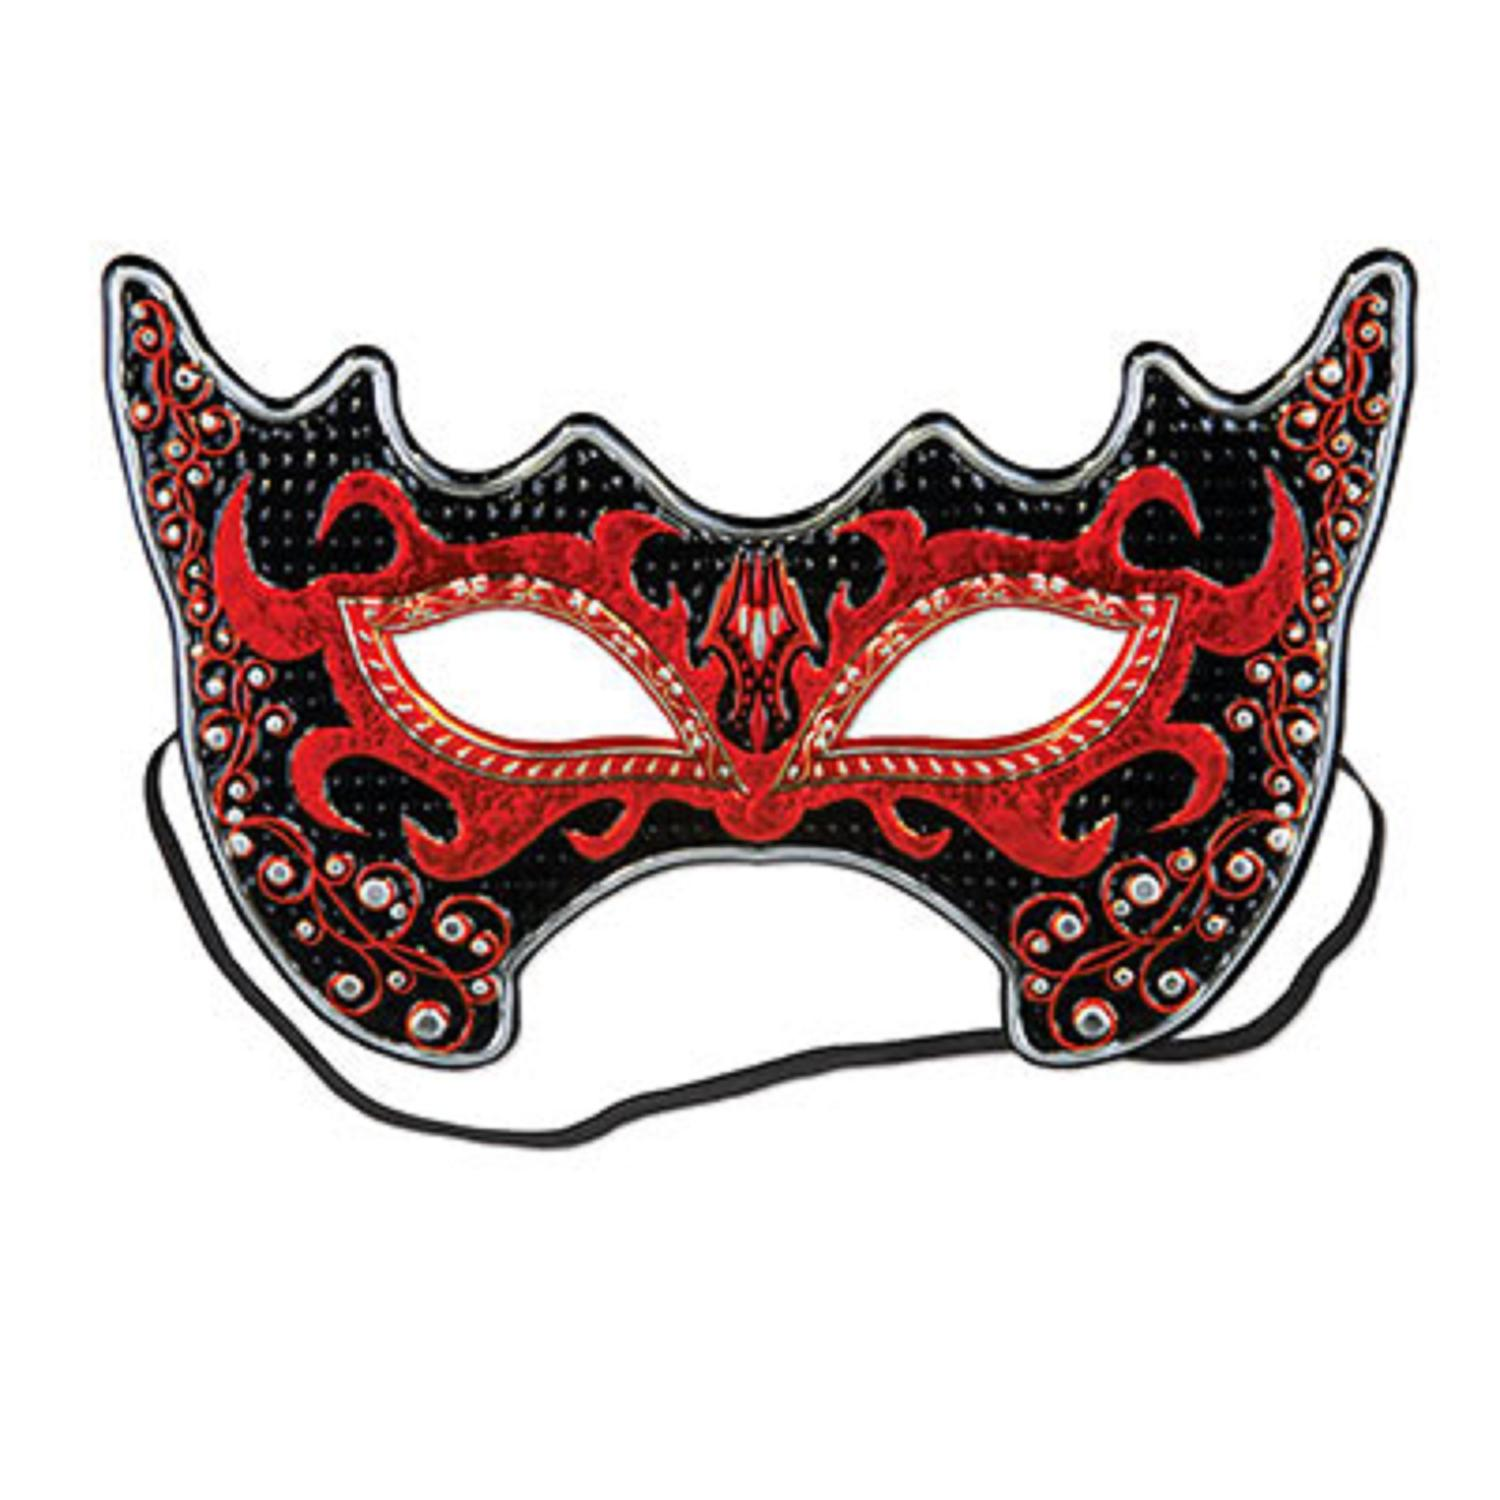 Club Pack of 12 Fiery Red and Black She-Devil Costume Party Face Masks